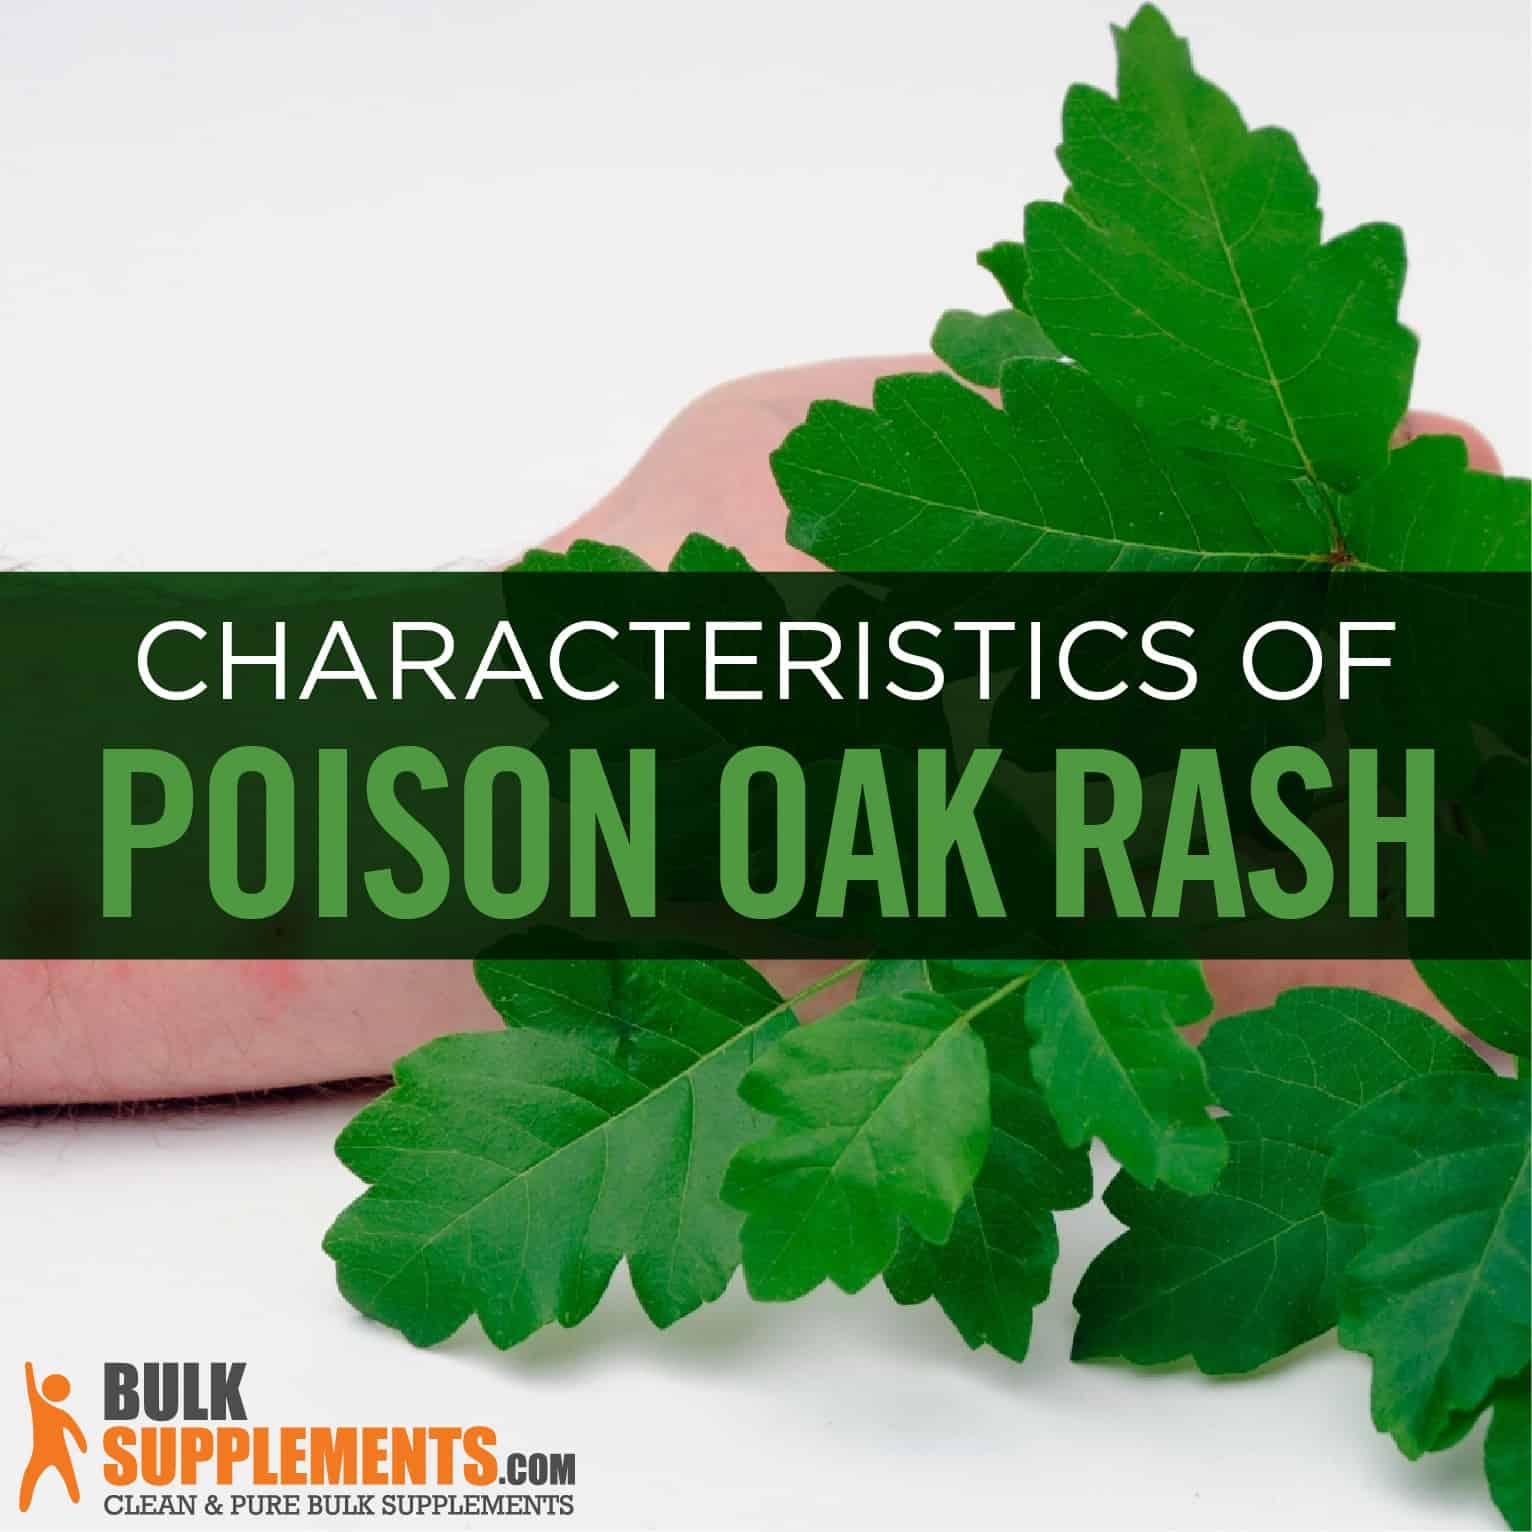 Poison Oak Rash Causes Characteristics Treatment,Steaming Green Beans In Pressure Cooker